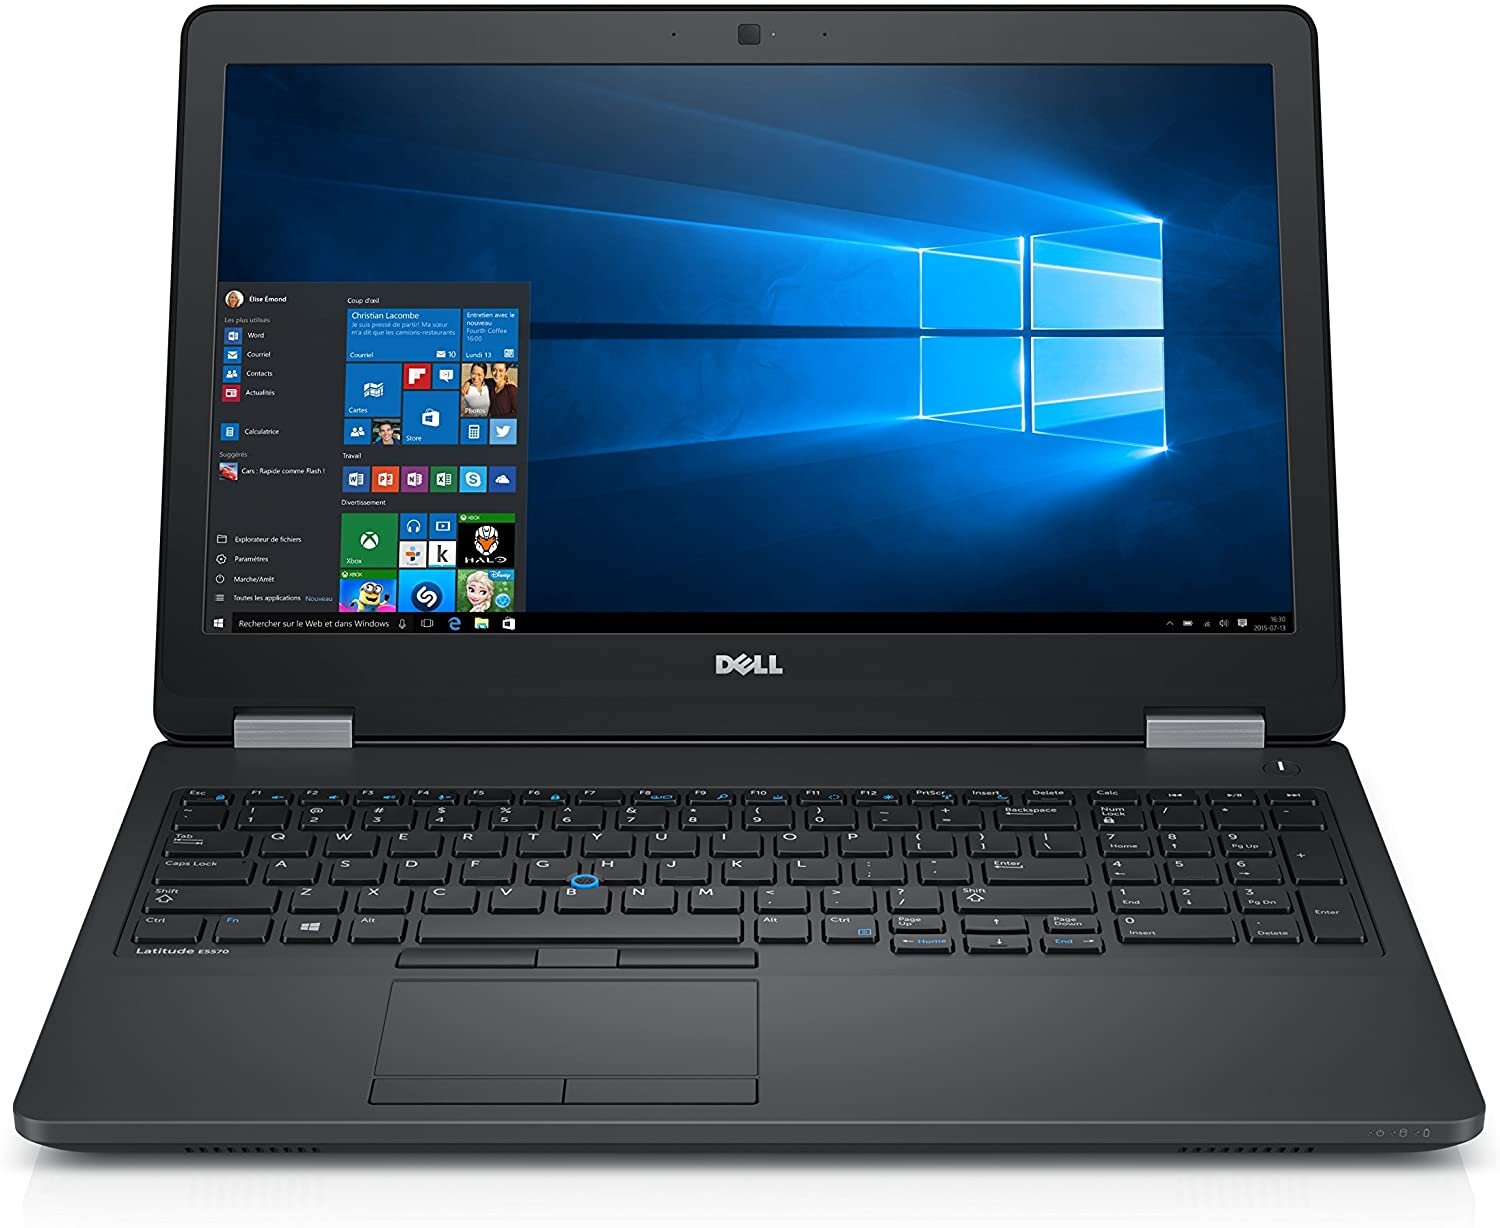 DELL Latitude E5570 I5-6300U 8GB 500GB Win10 PRO